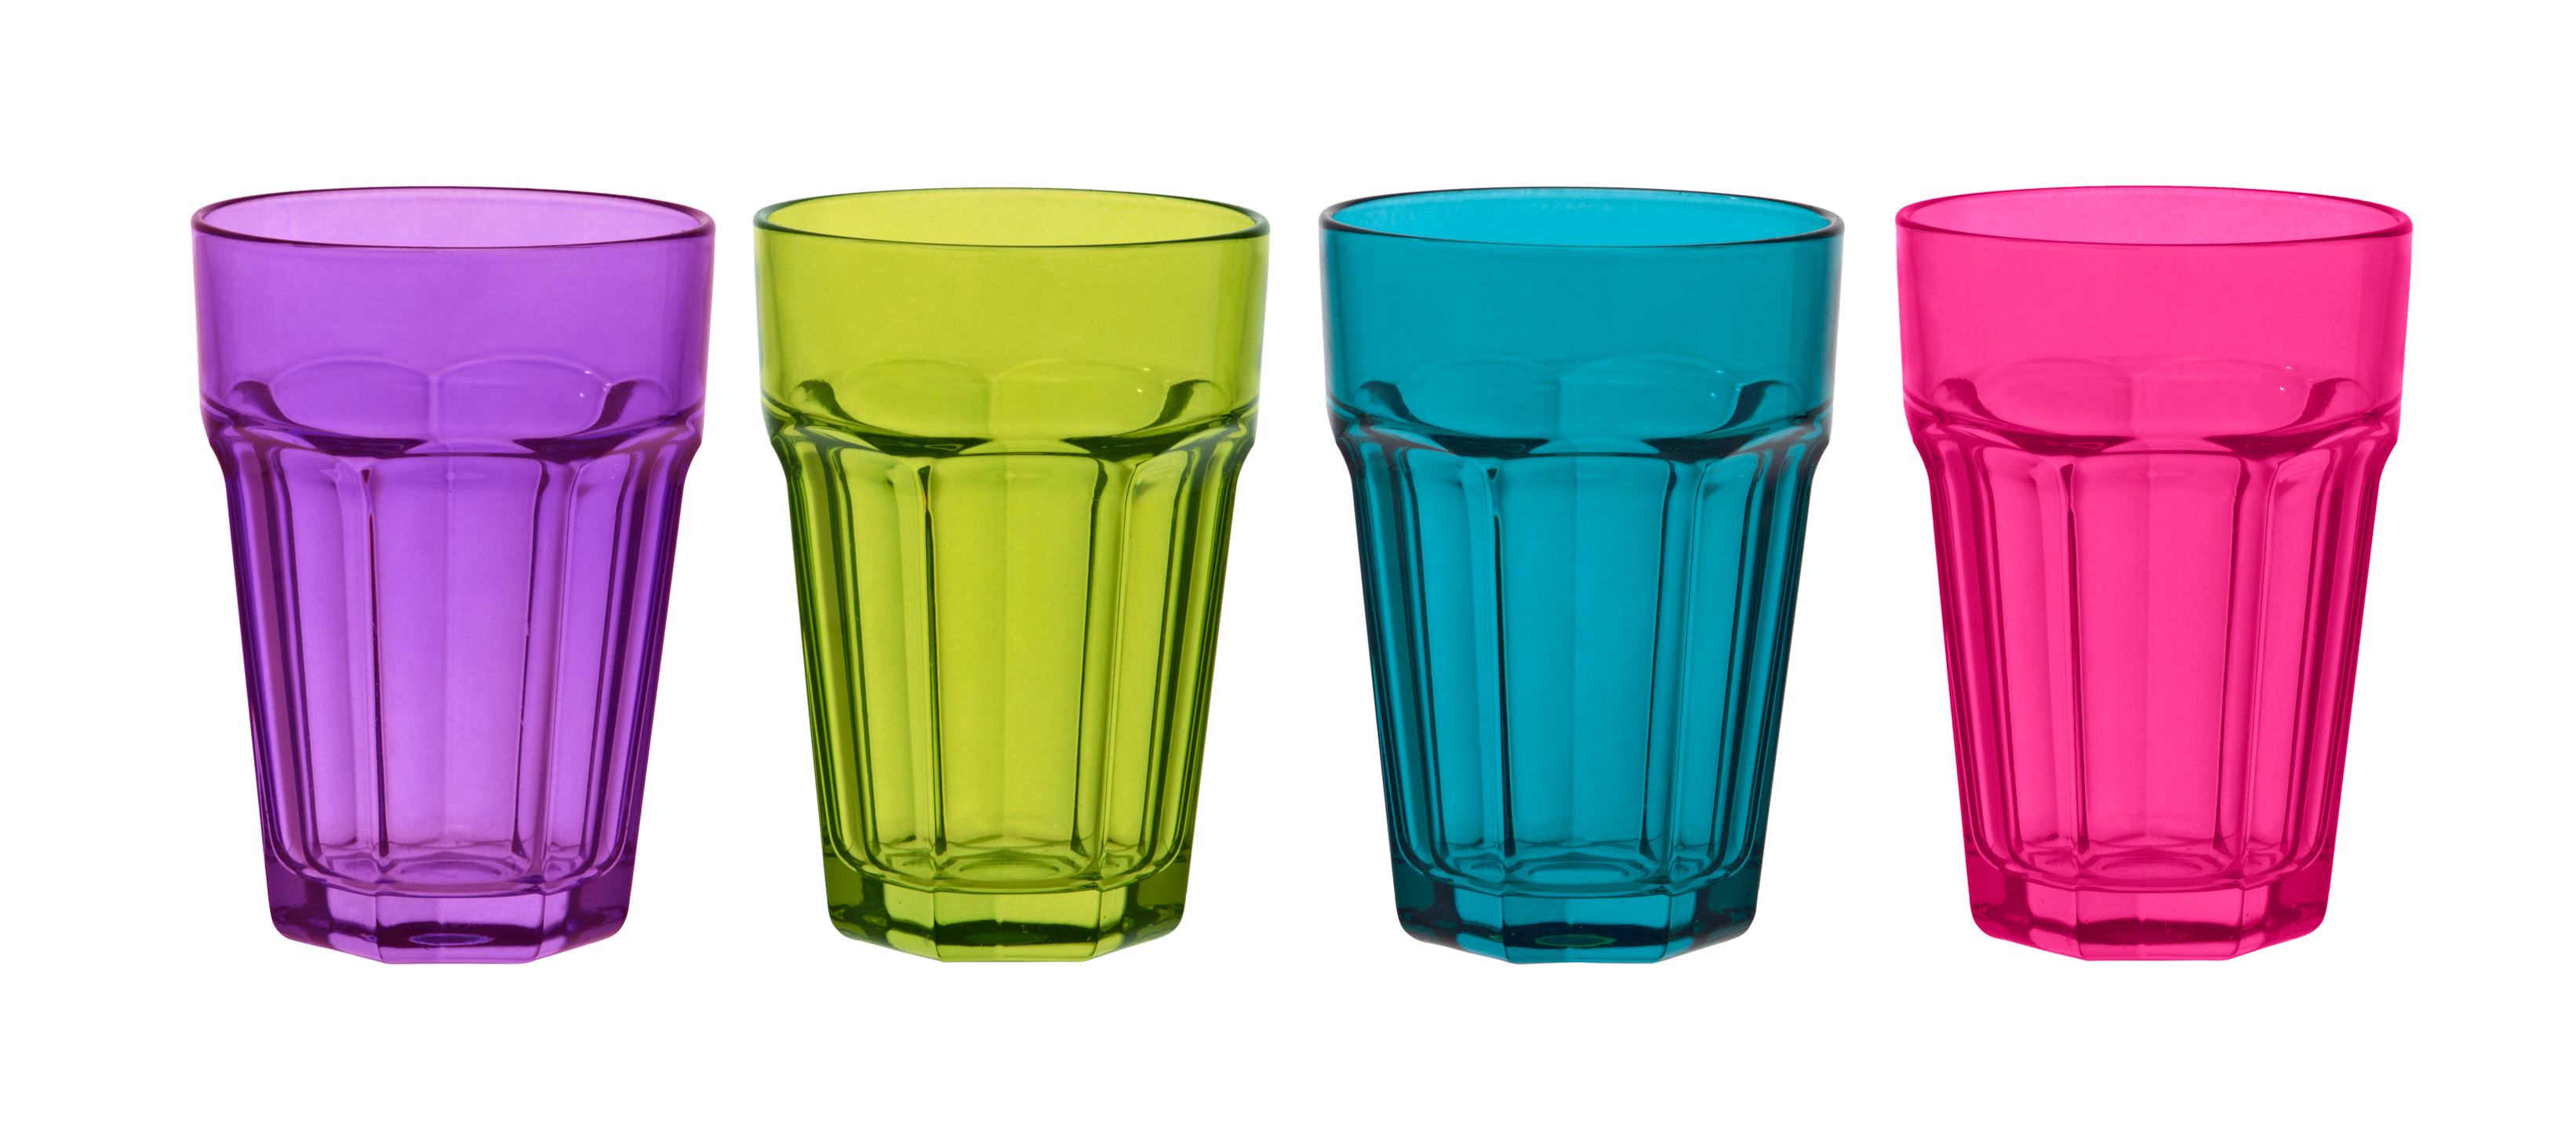 Different Style Drinking Glasses